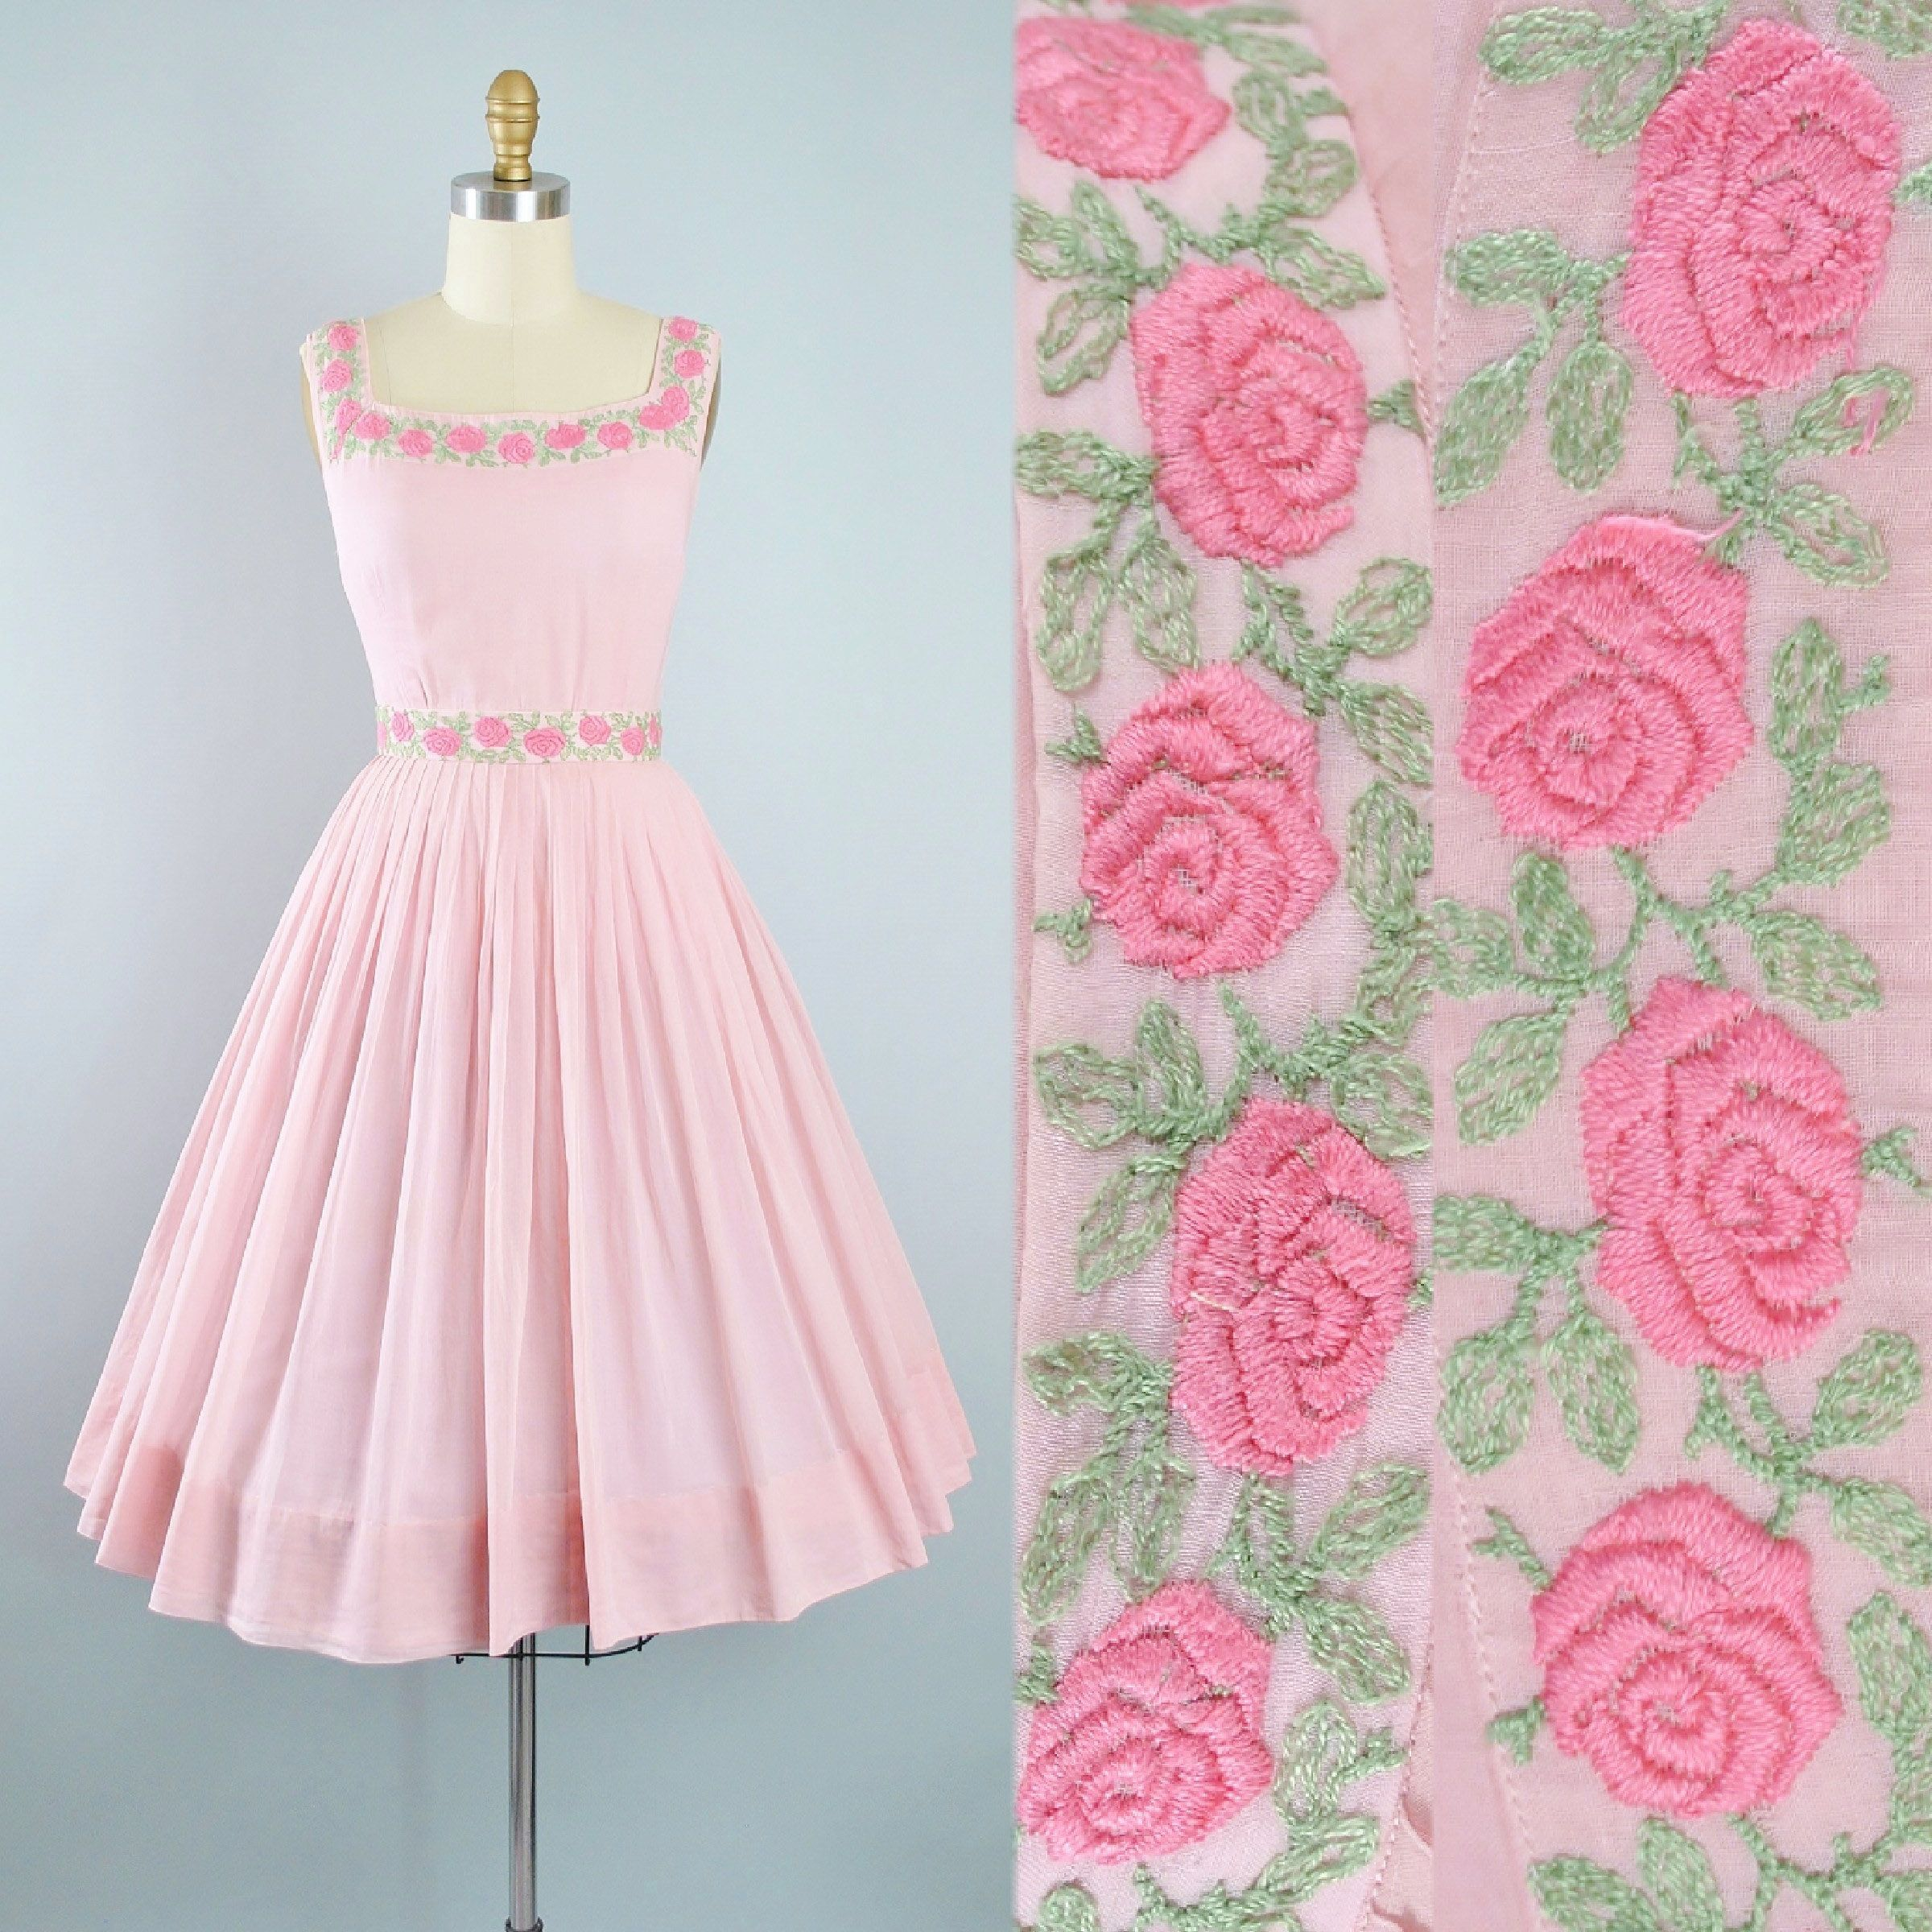 Vintage 1950s Dress Set / 50s 60s Pink EMBROIDERED ROSE Cotton ...